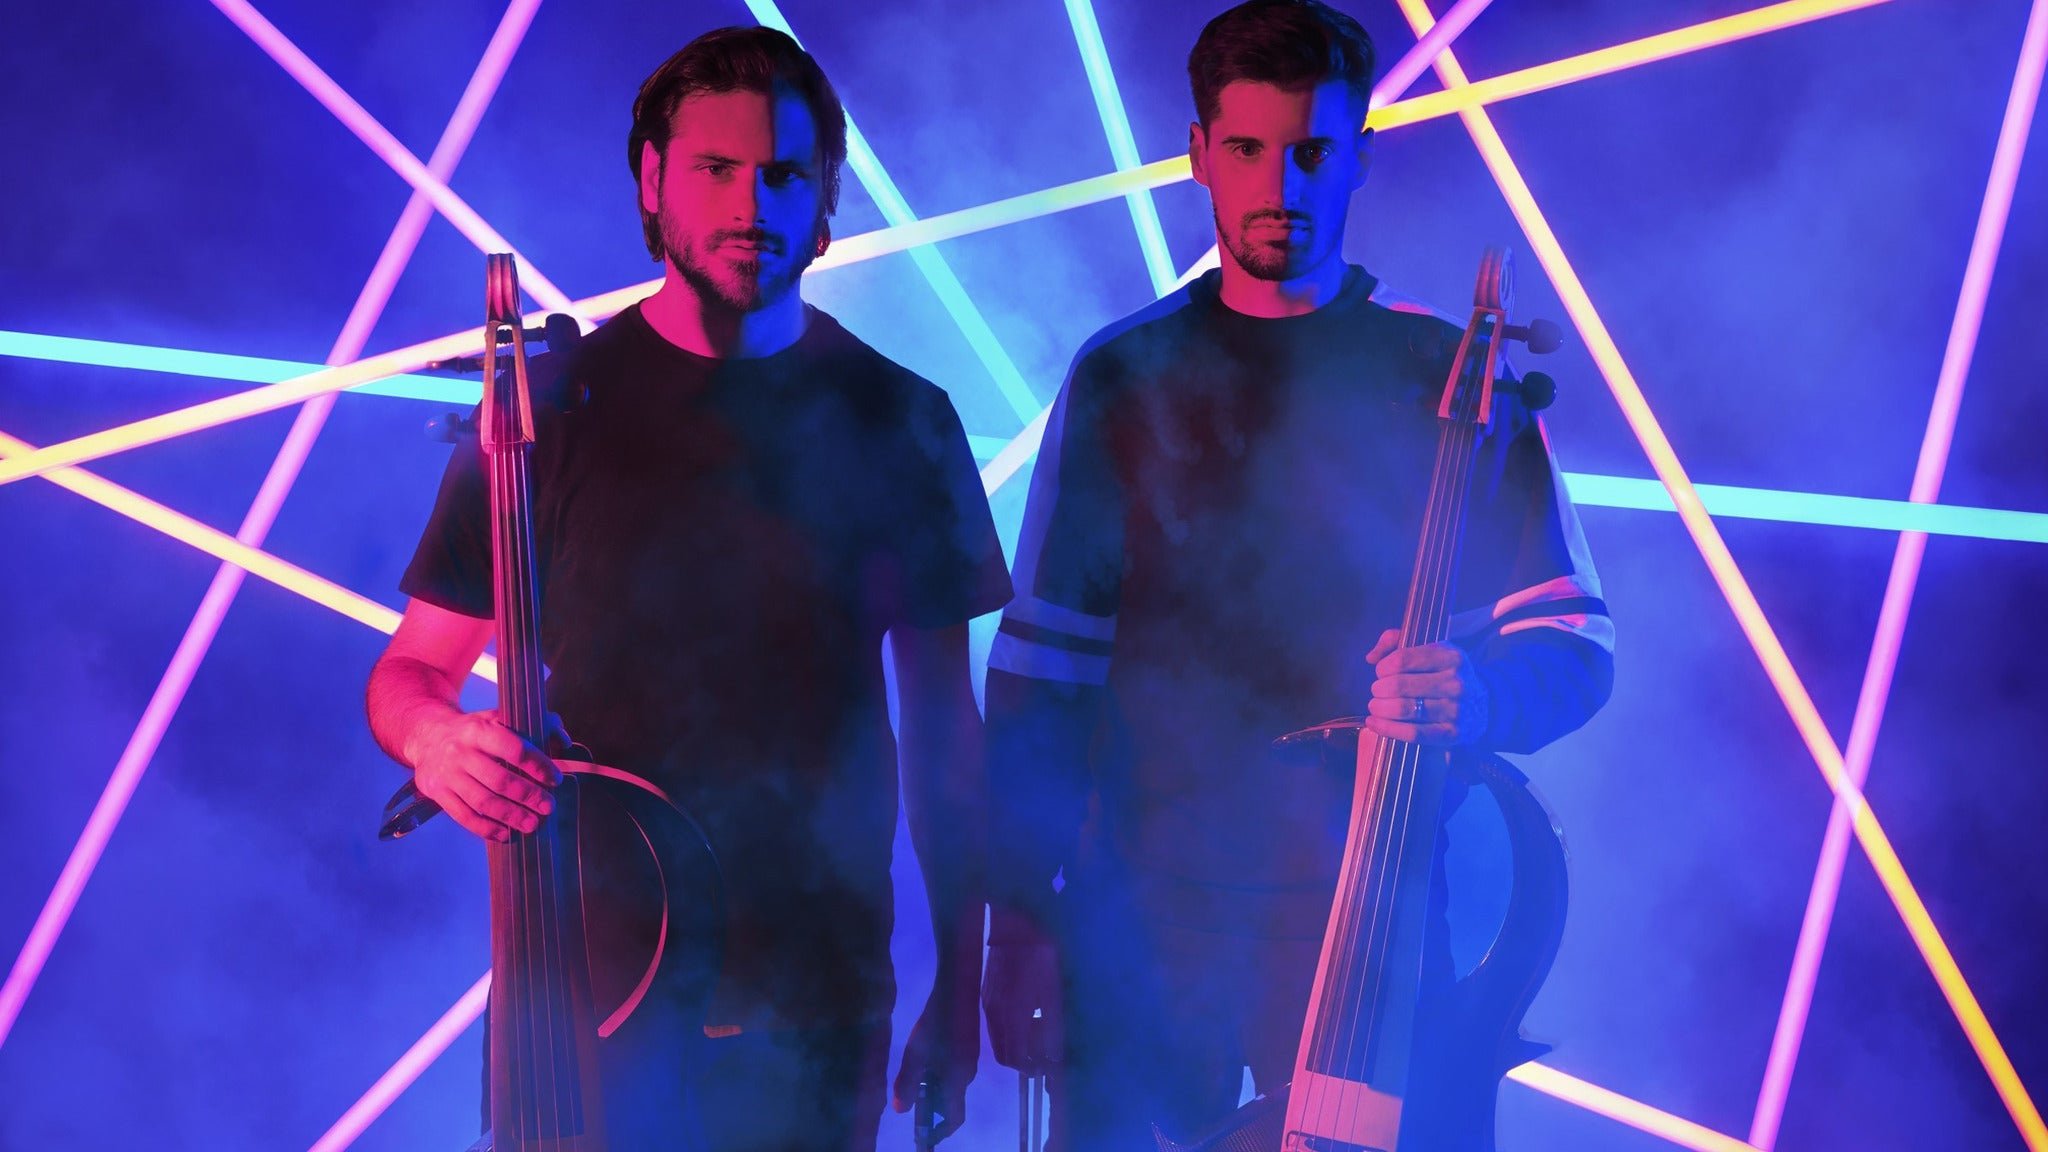 2Cellos at Bridgestone Arena